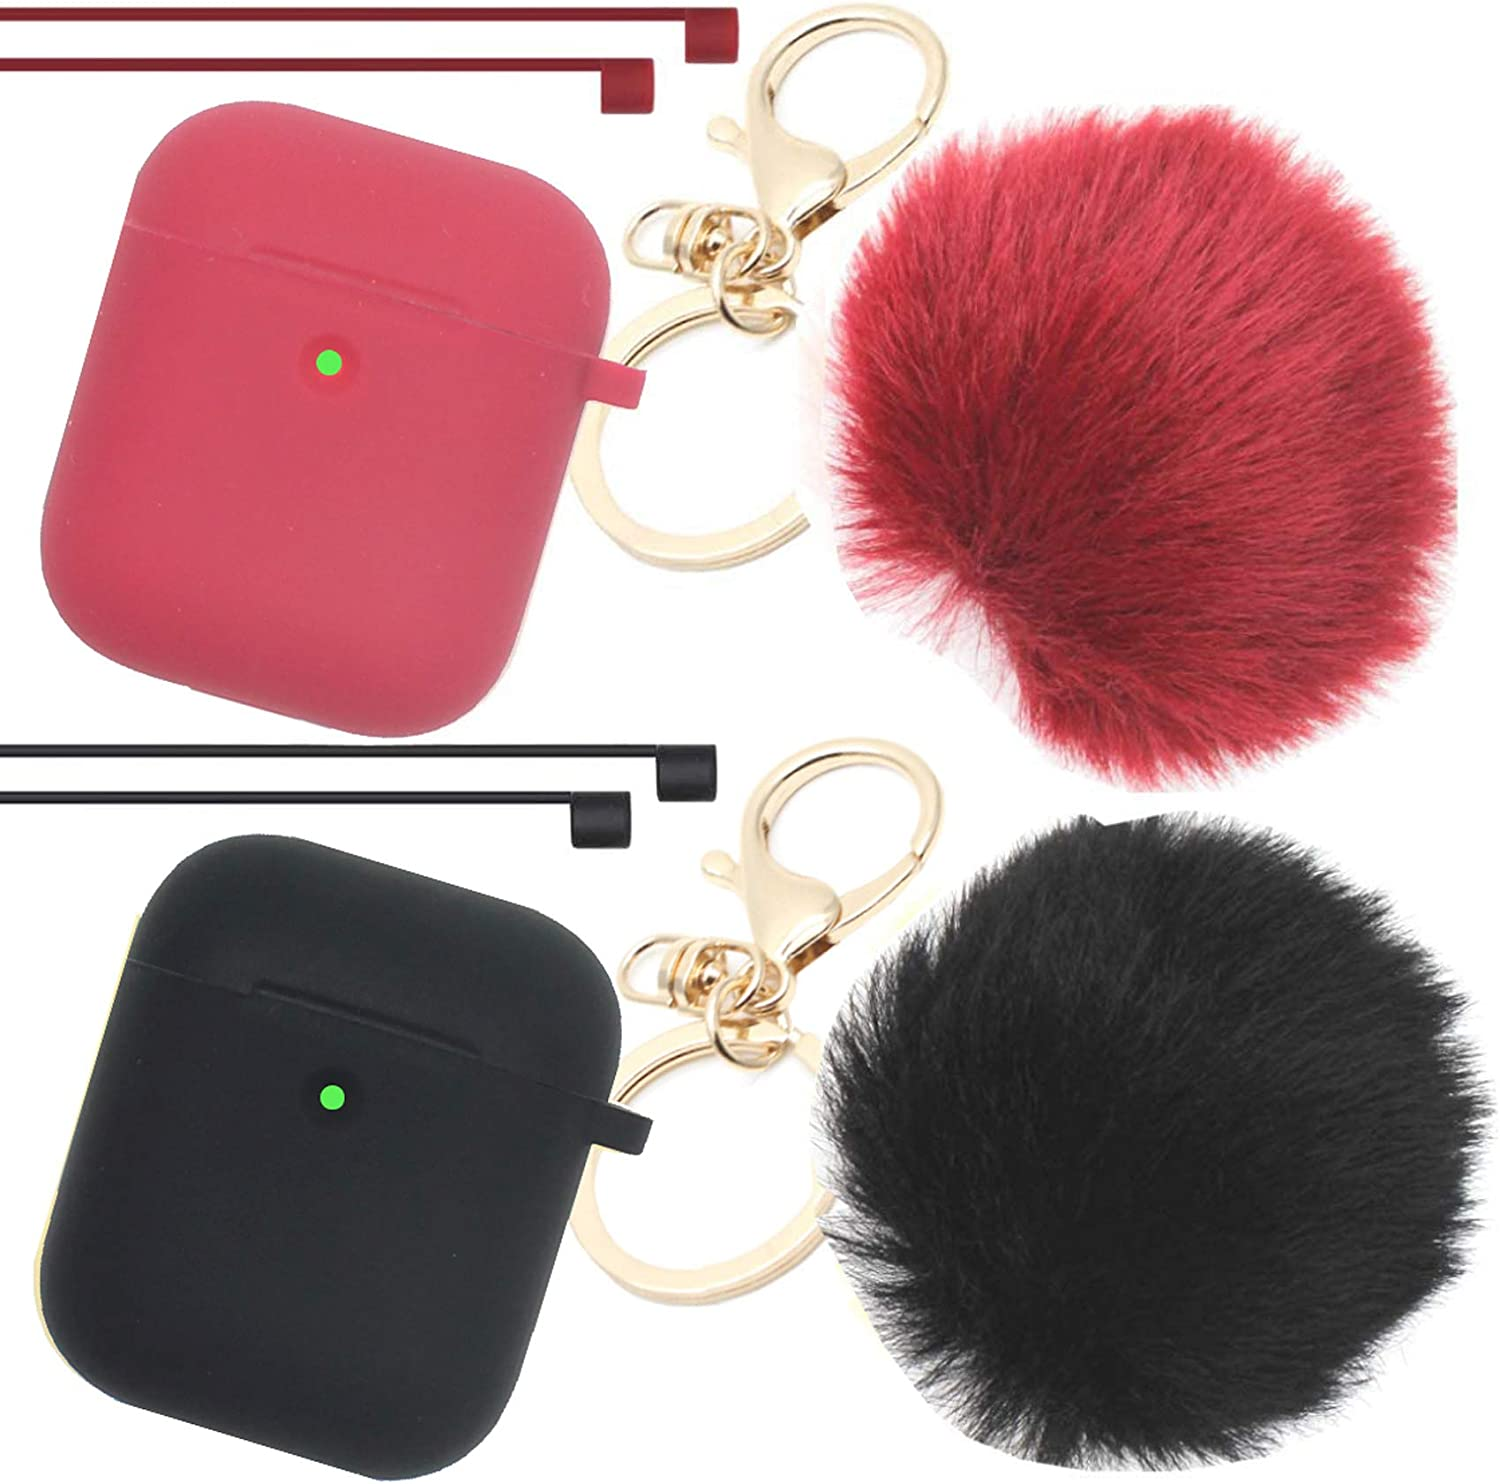 Airpods Case Newest Upgrade (Front LED Visible) ANTARCTICASE Skin Drop Proof Protective Pompom Keychain Case Cover Silicone for Apple Airpods 2&1 Charging Cute Fur Ball Keychain (Burgundy+Black)